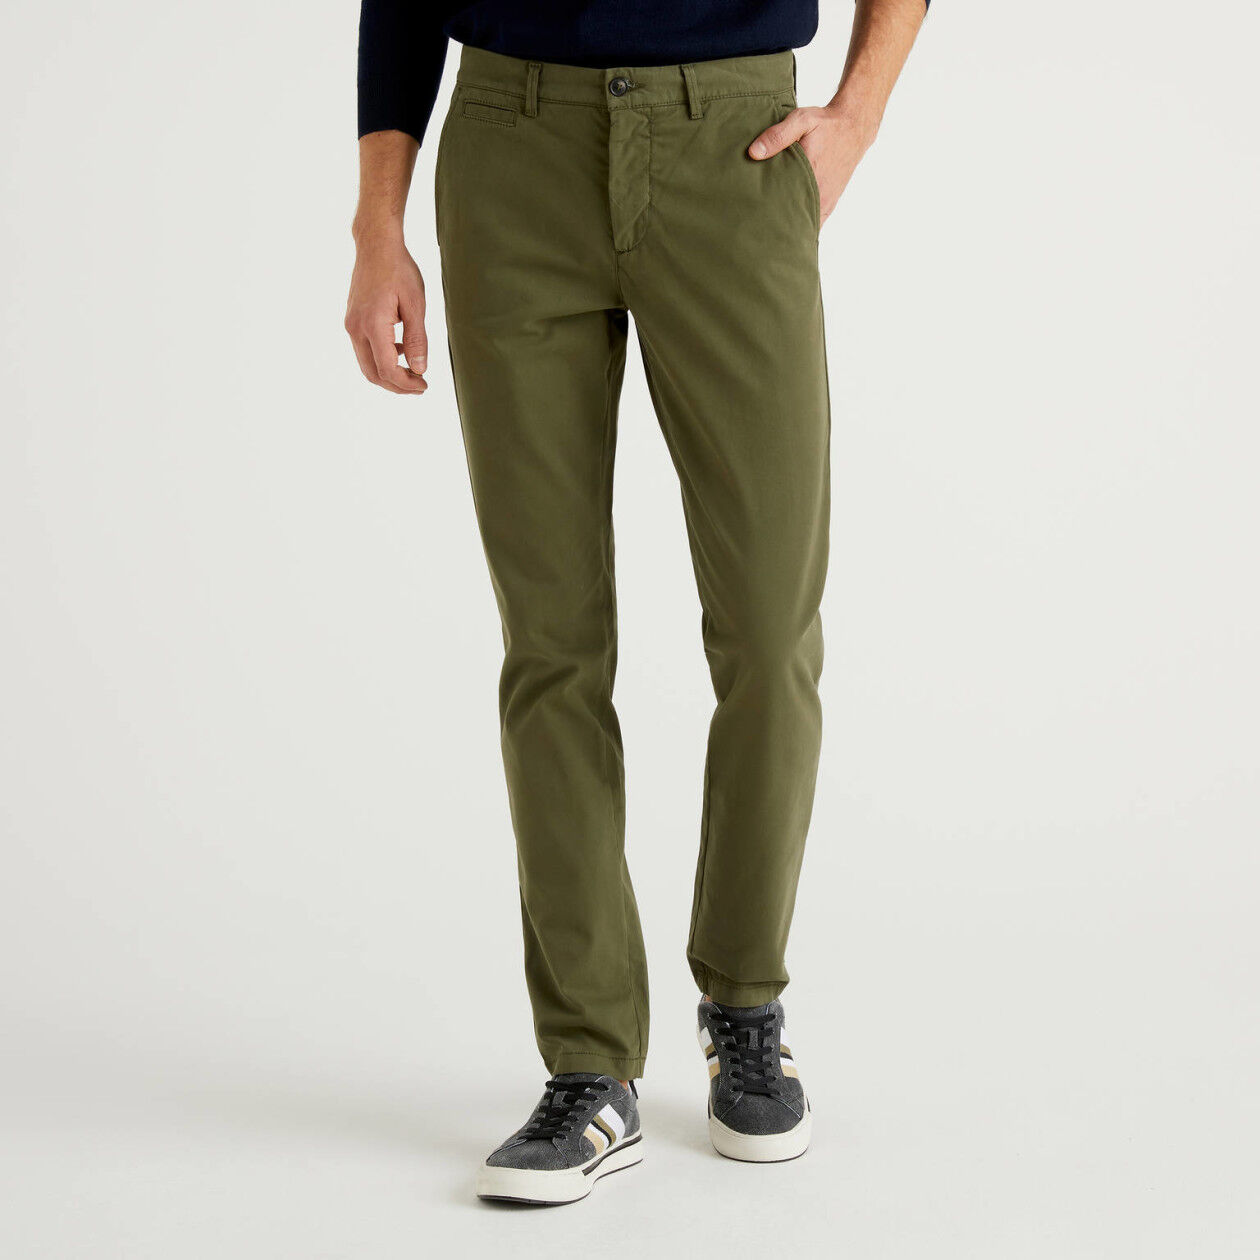 Military green slim fit chinos